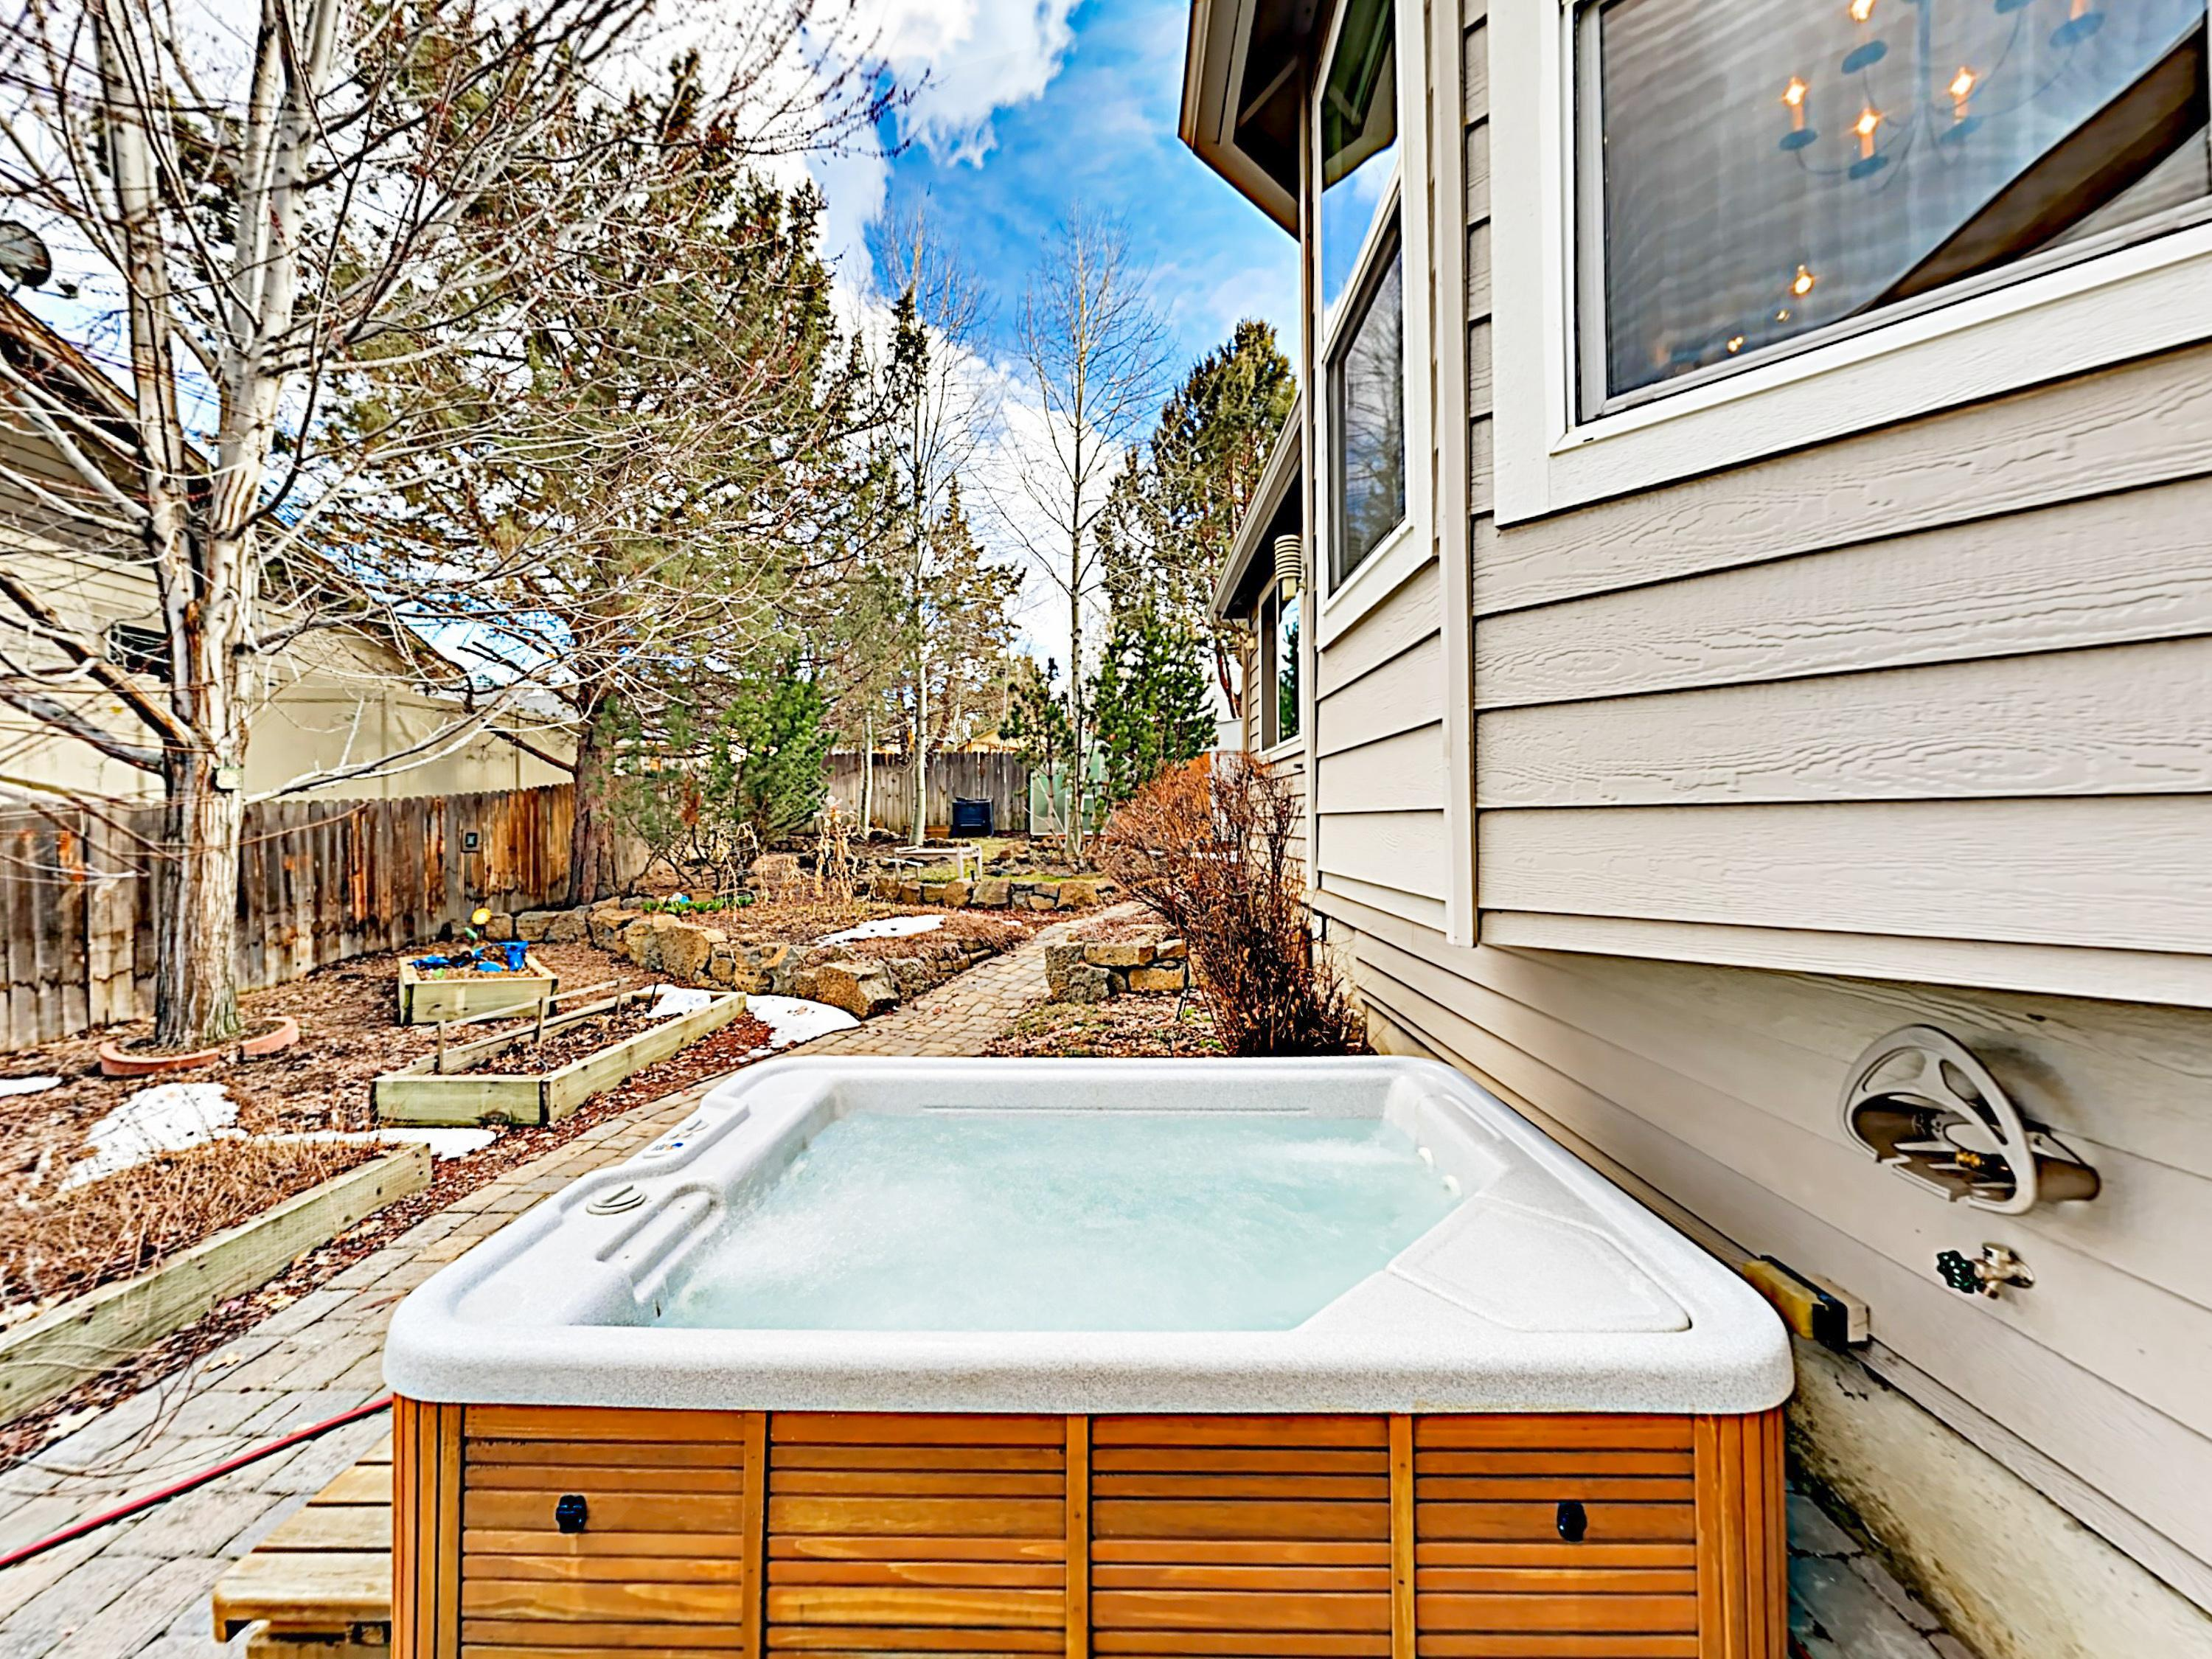 Lovely Home w/ Backyard Hot Tub & Koi Pond